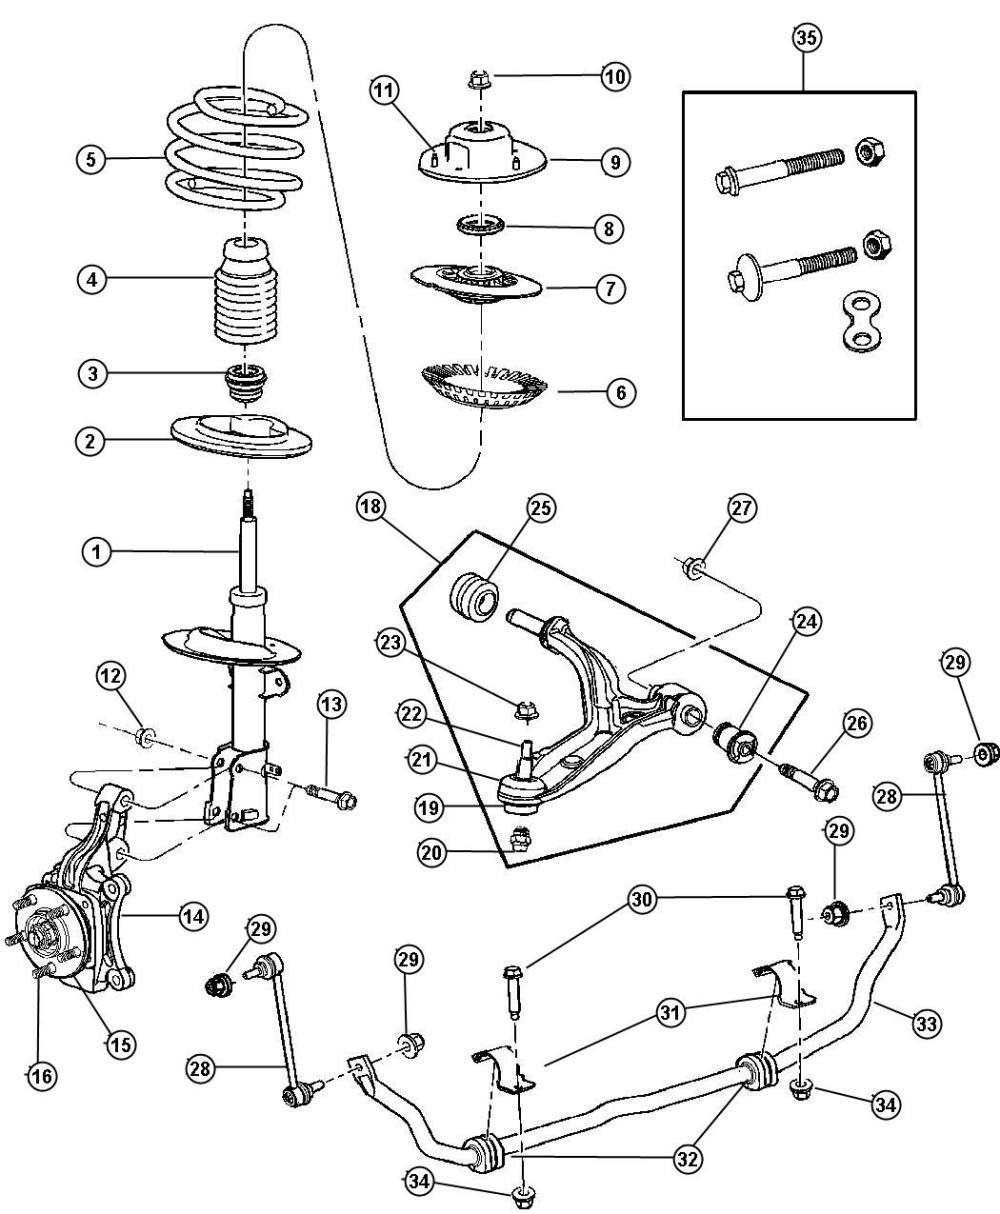 medium resolution of 2010 jeep compass spring right front coil zhj tag 709aa znj znj tag 709aa on a